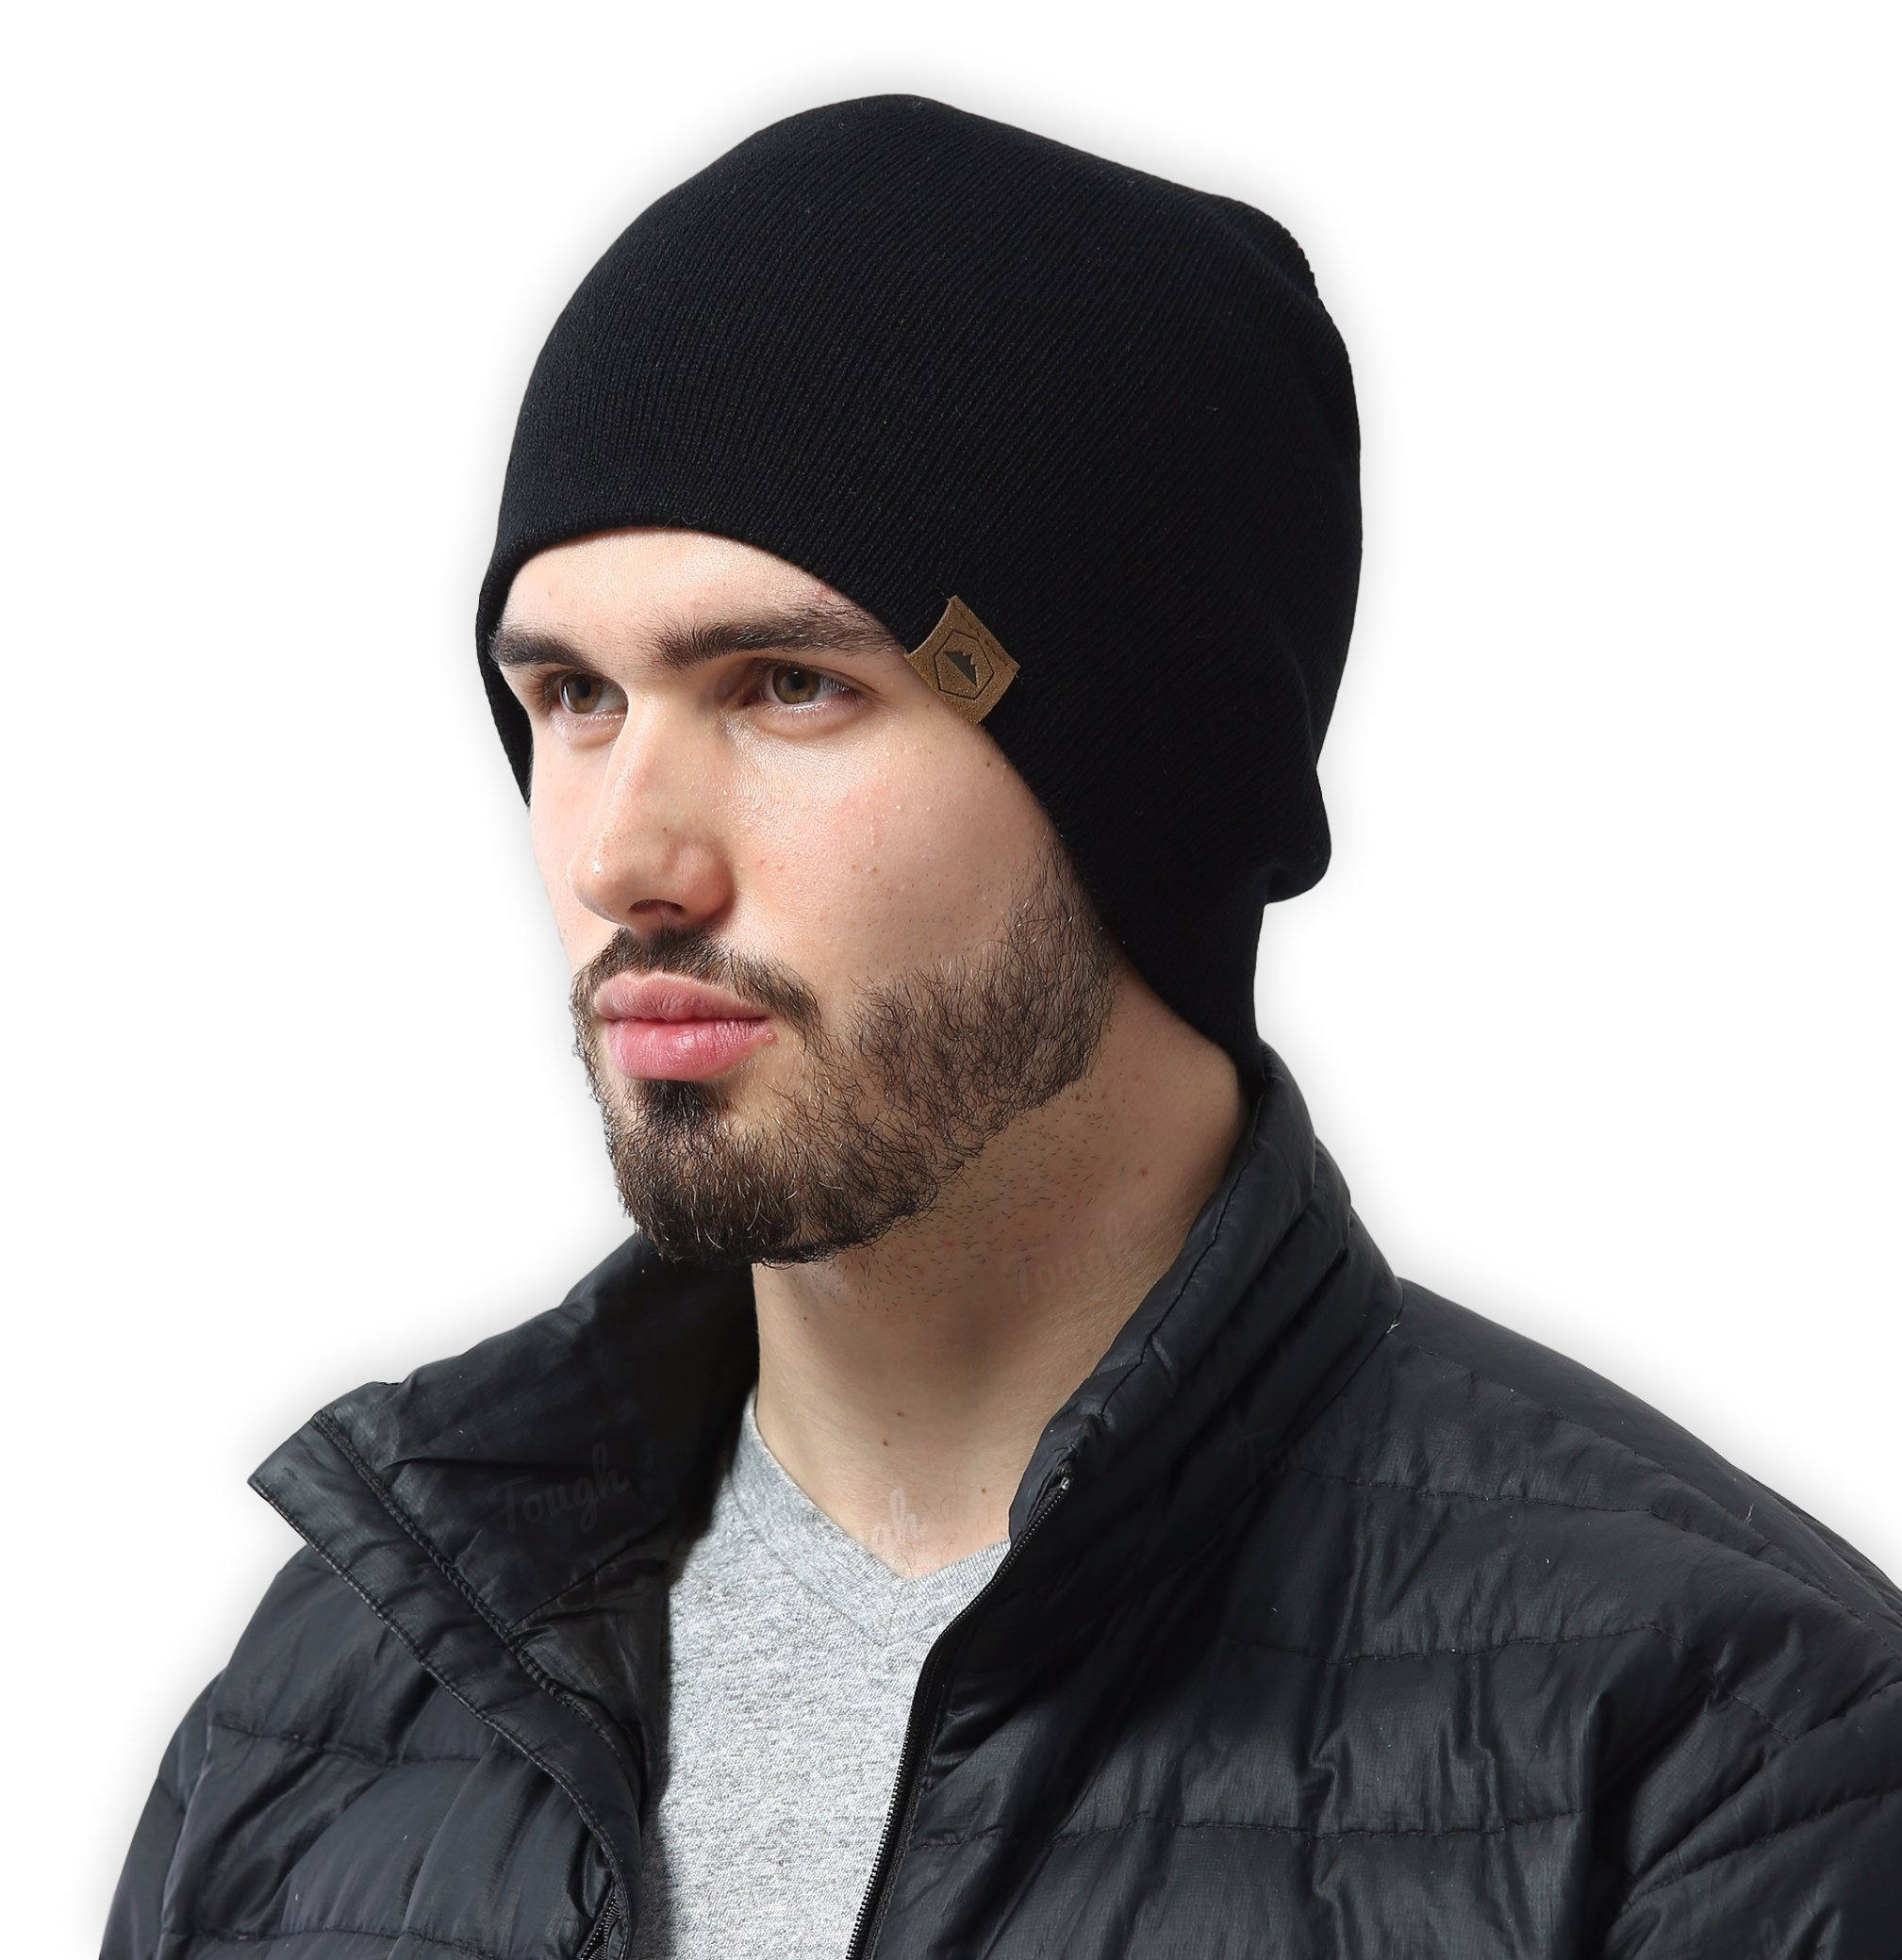 fd18e3714c5 Tough Headwear Cable Knit Beanie Top Quality For Men And Women Limited  Stylish